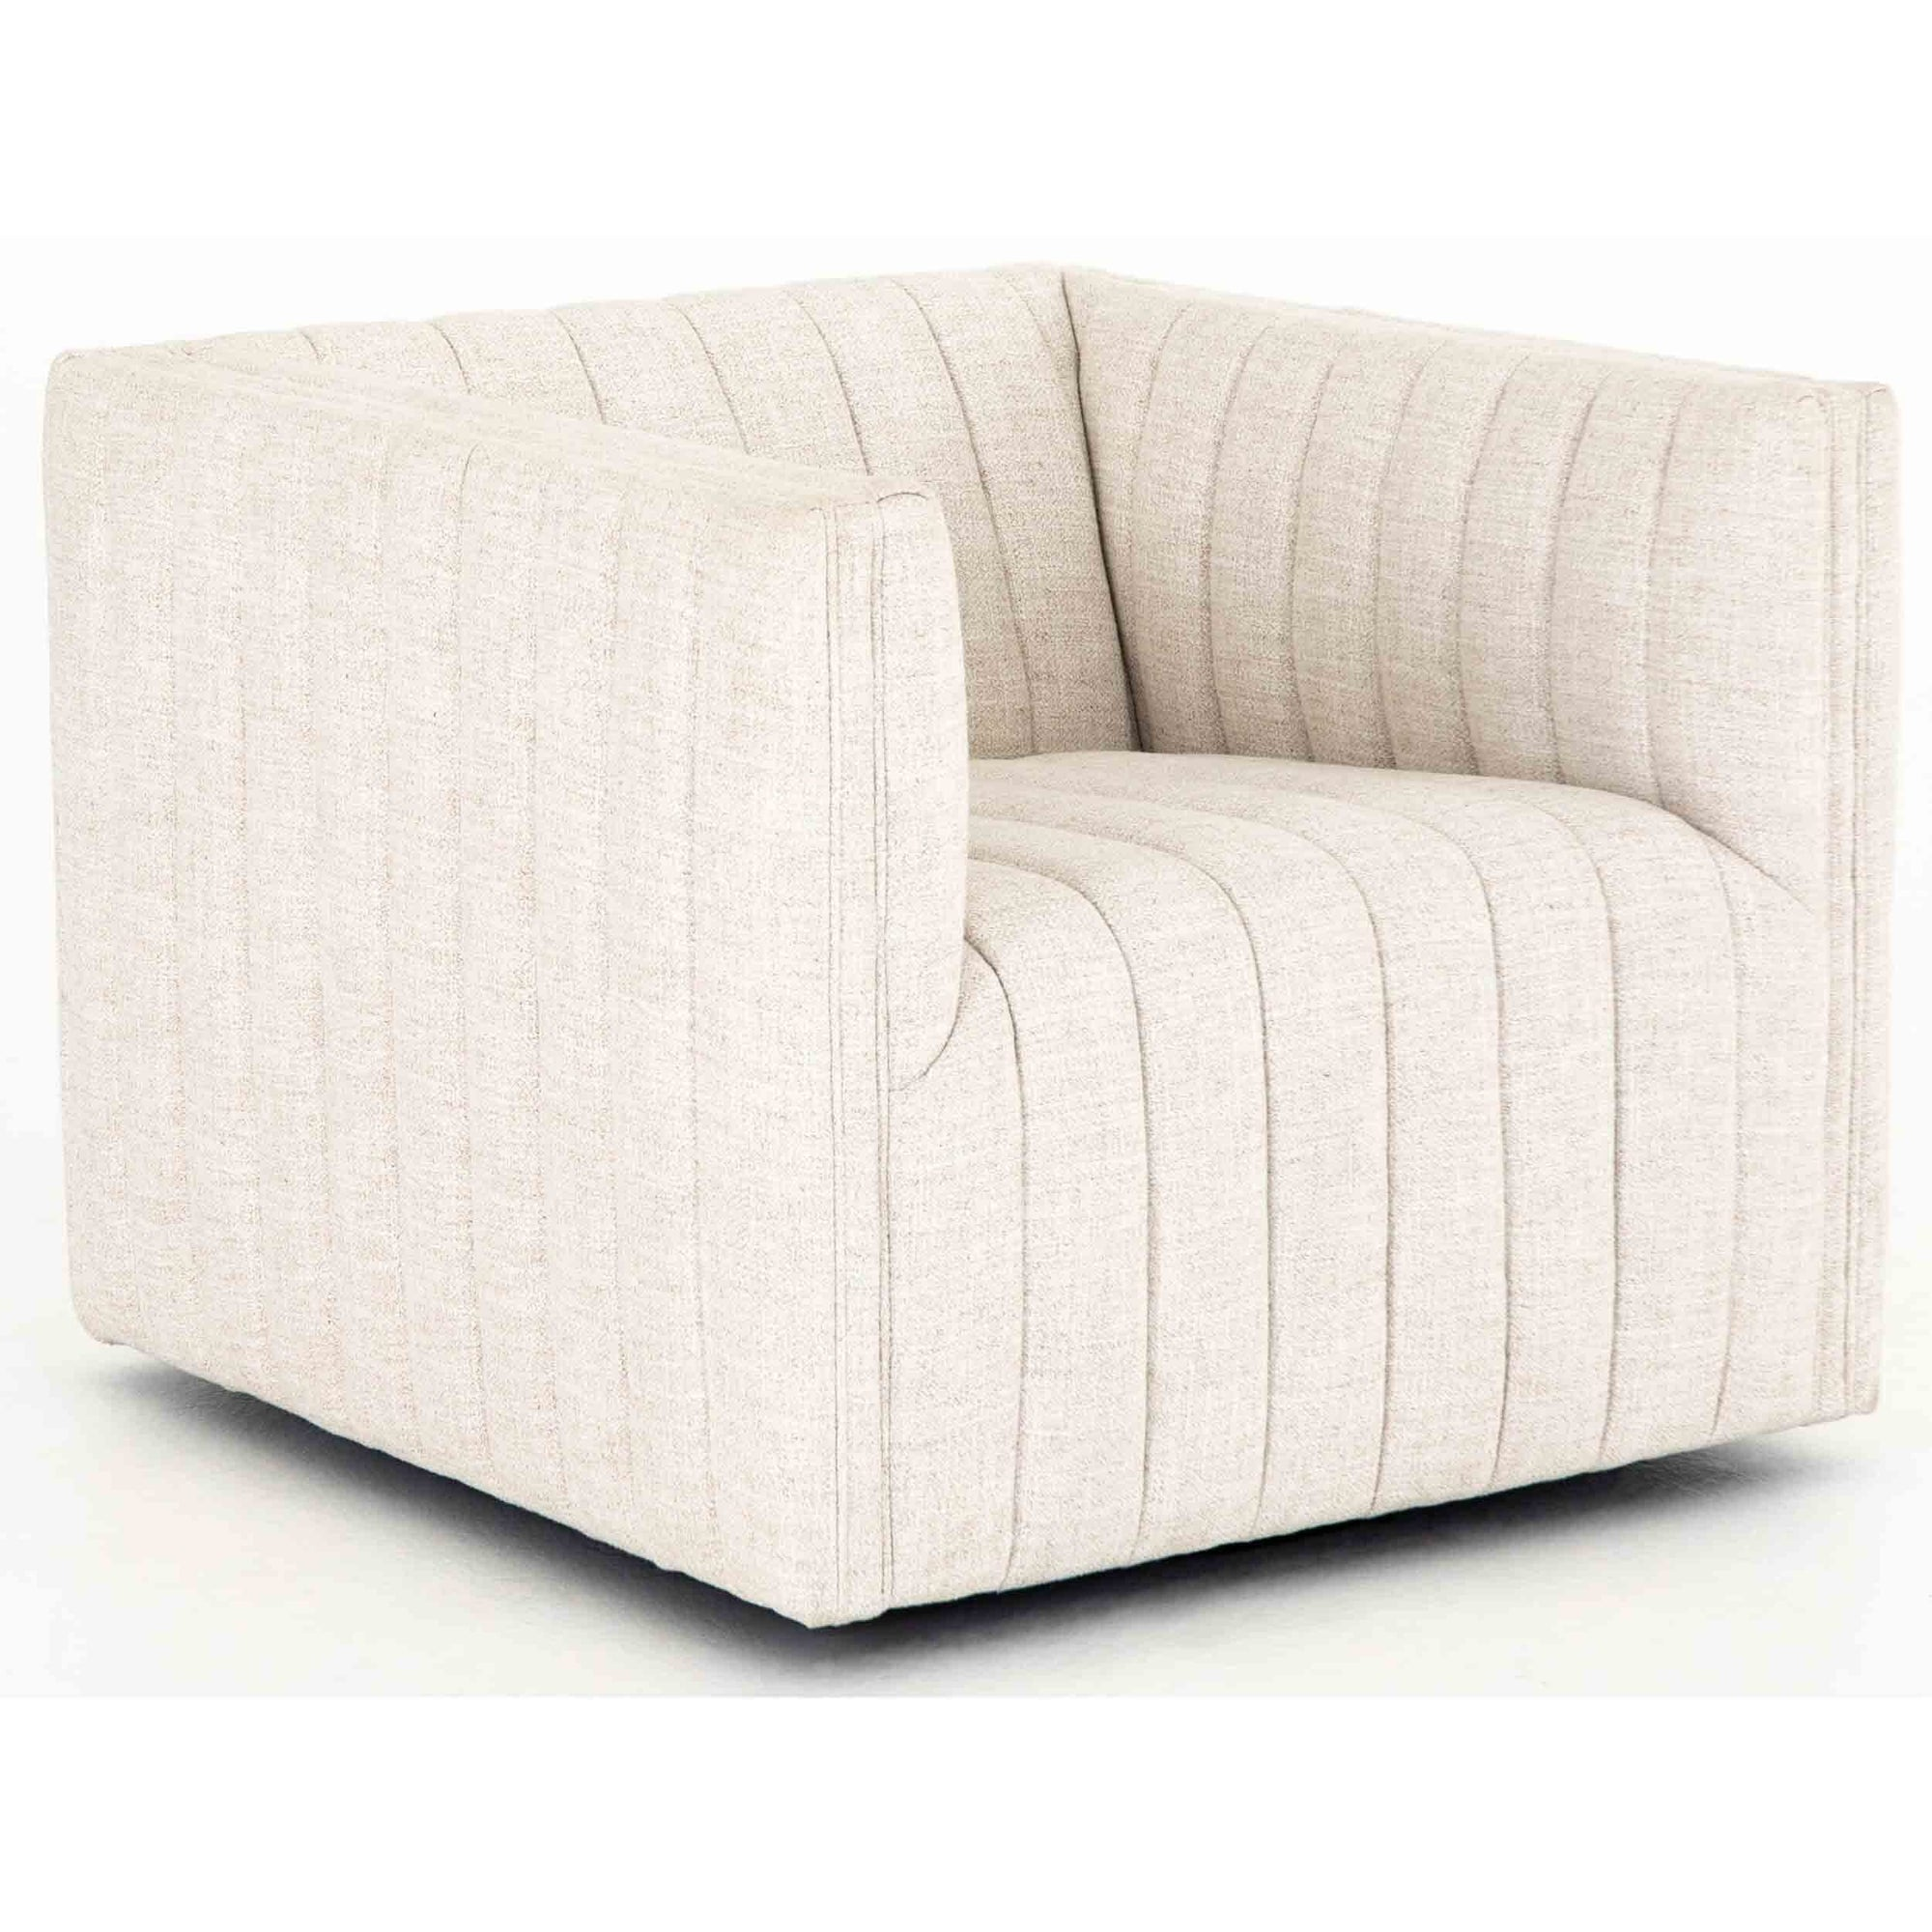 Awesome Augustine Swivel Chair Dover Crescent High Fashion Home Short Links Chair Design For Home Short Linksinfo